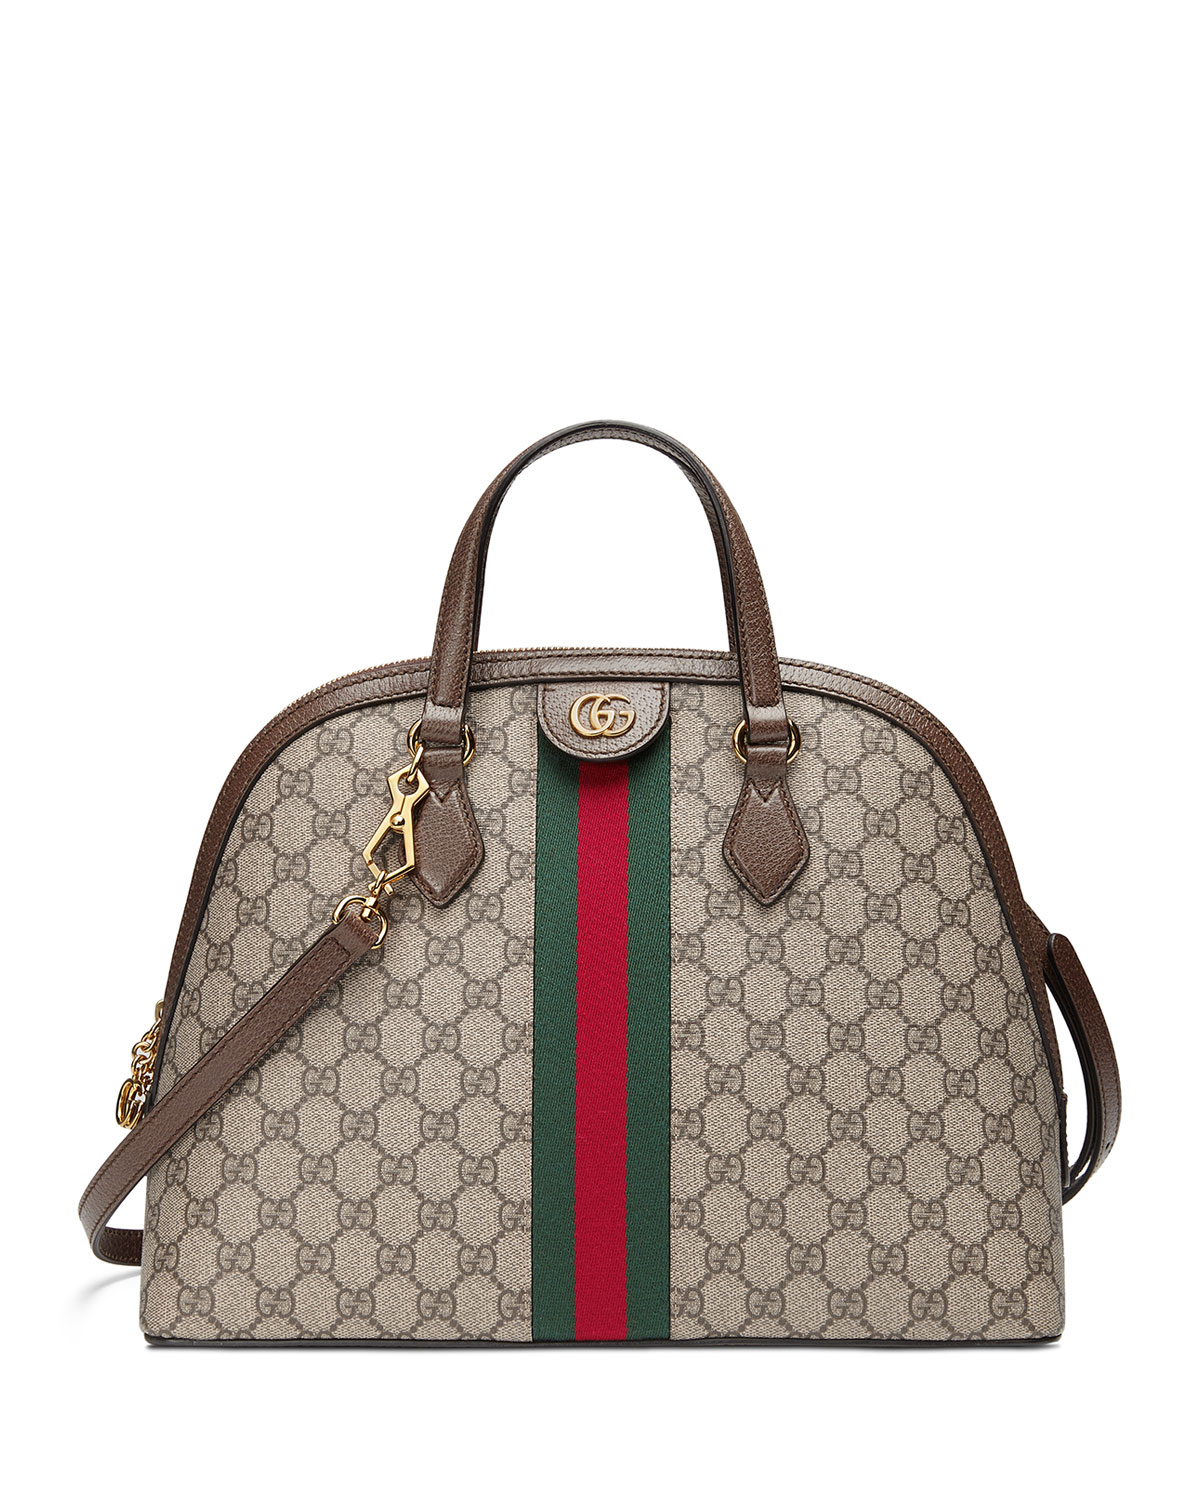 b428eec61916 Gucci Ophidia Medium Web GG Supreme Top-Handle Bag | Neiman Marcus